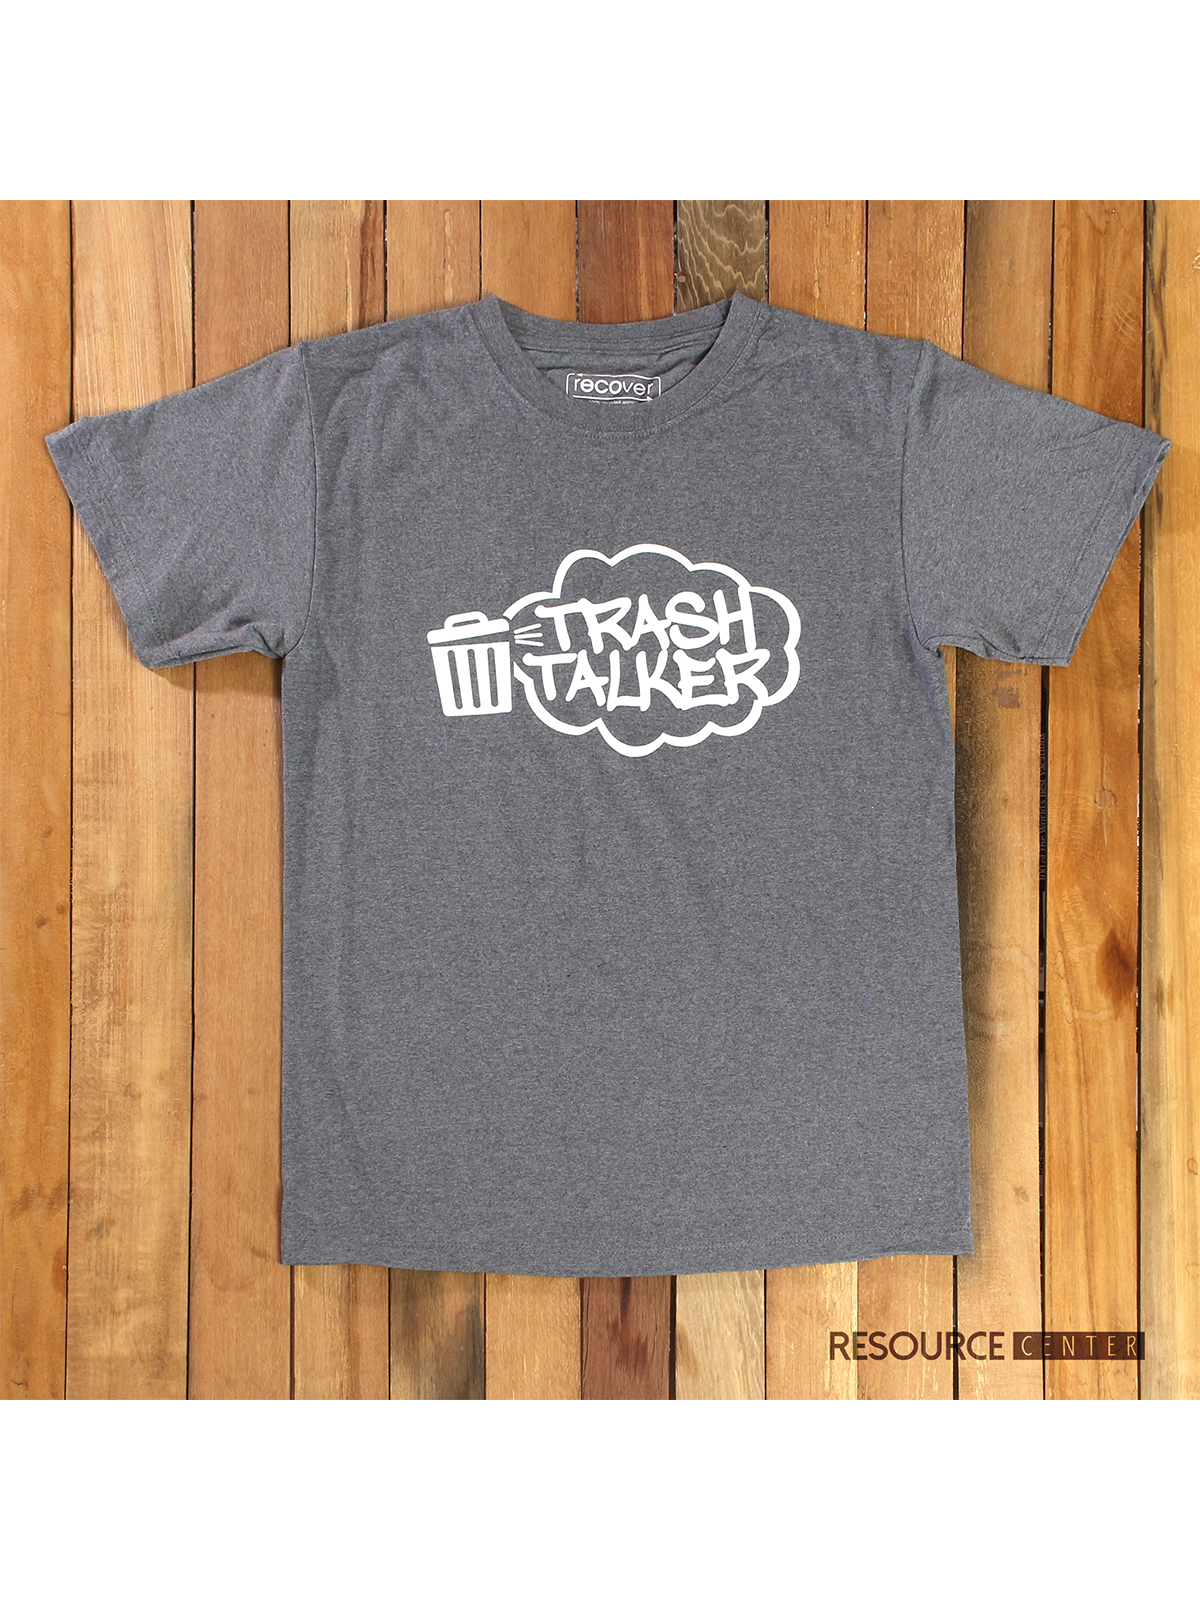 SUSTAINABLE T-SHIRT - LARGE - DARK GREY - TRASH TALKER